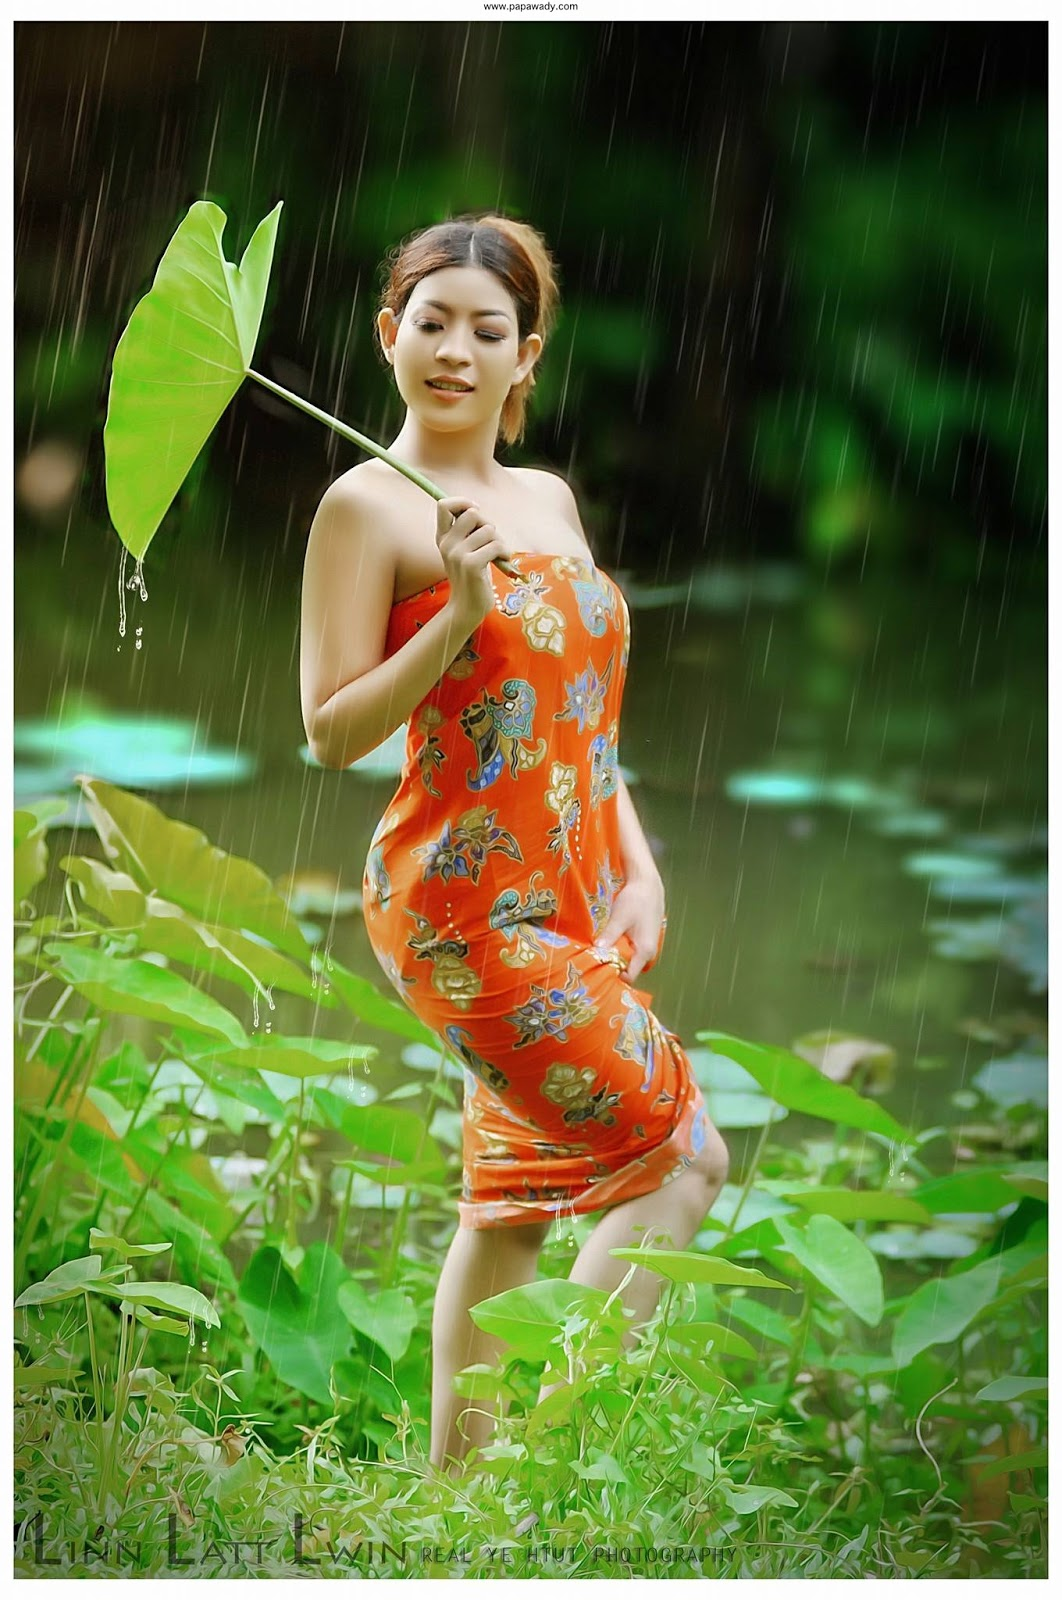 Michelle Yeoh Web Theatre: Michelle Yeoh Biography Aung ye lin new photos